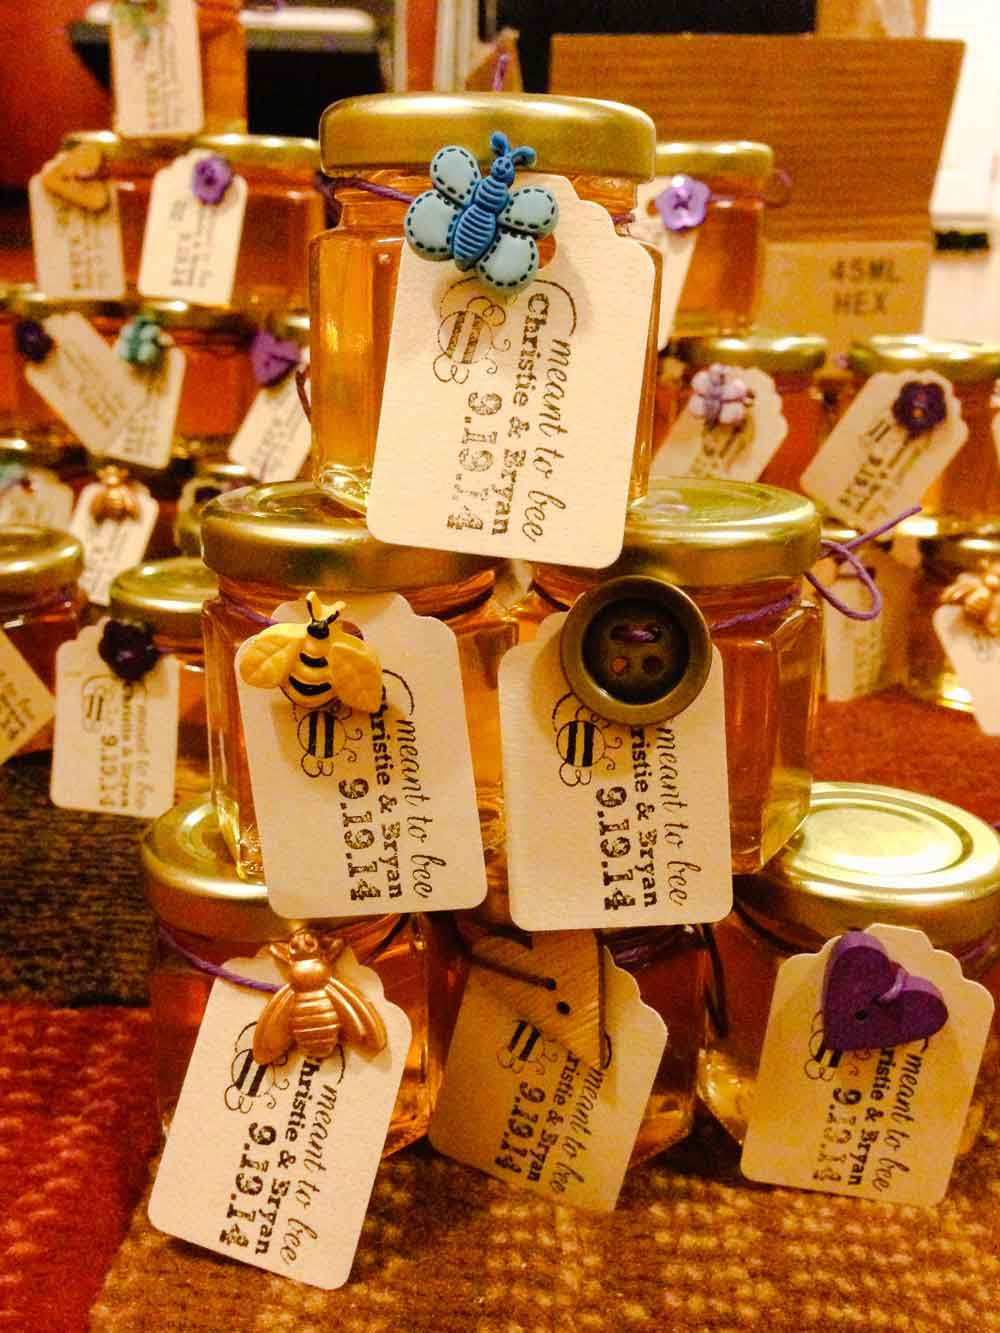 Christie and Bryan's Honey Jar Wedding Favors Story